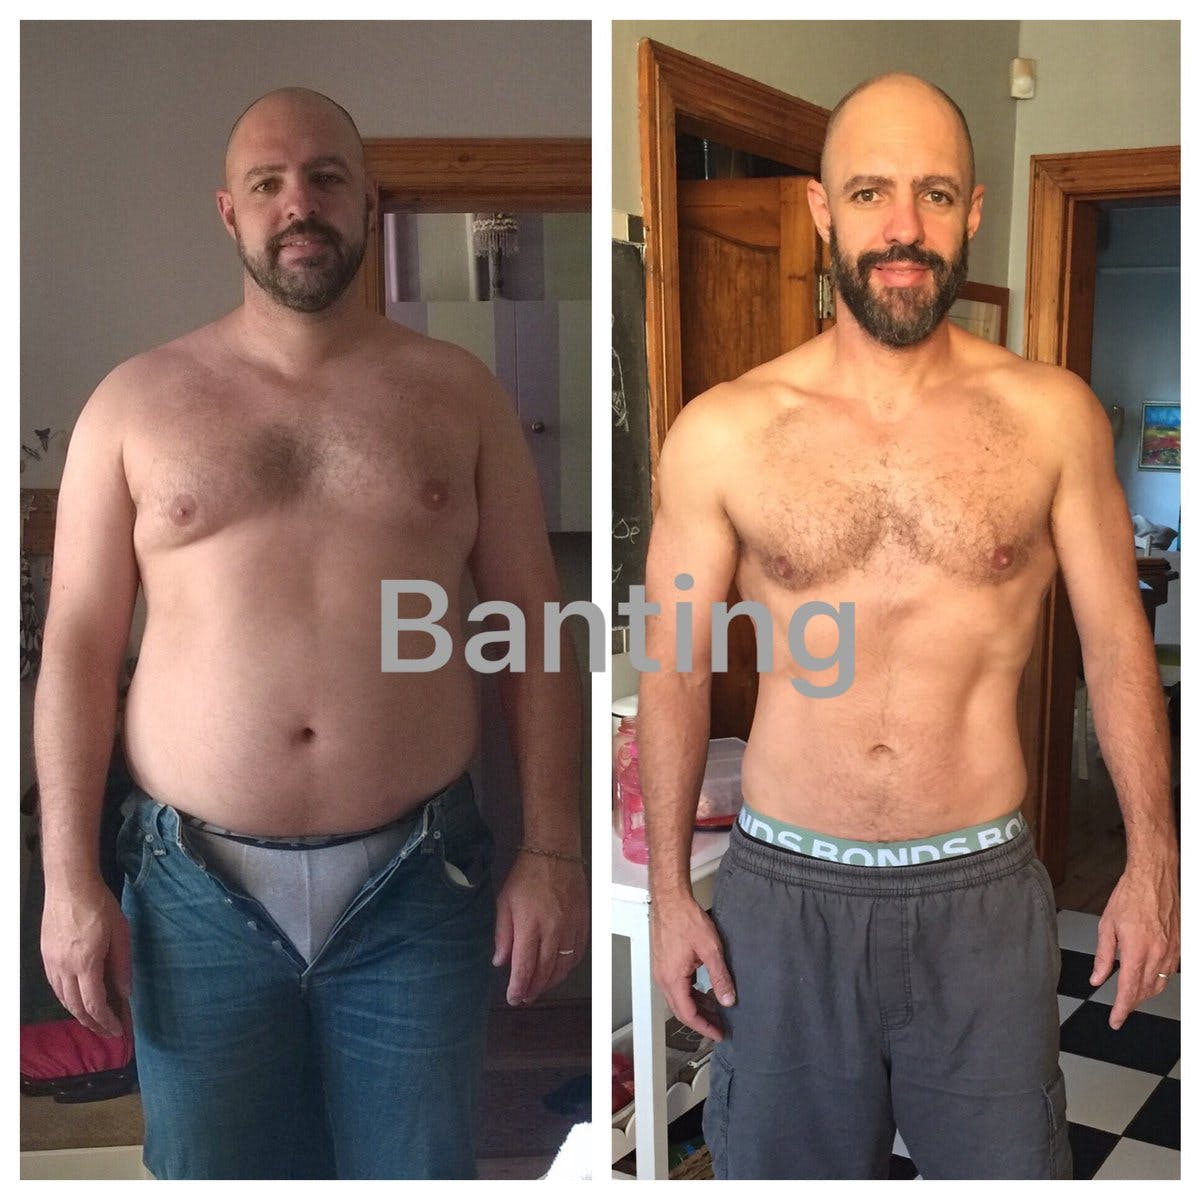 Minus 90 Pounds in 15 Months on Low Carb